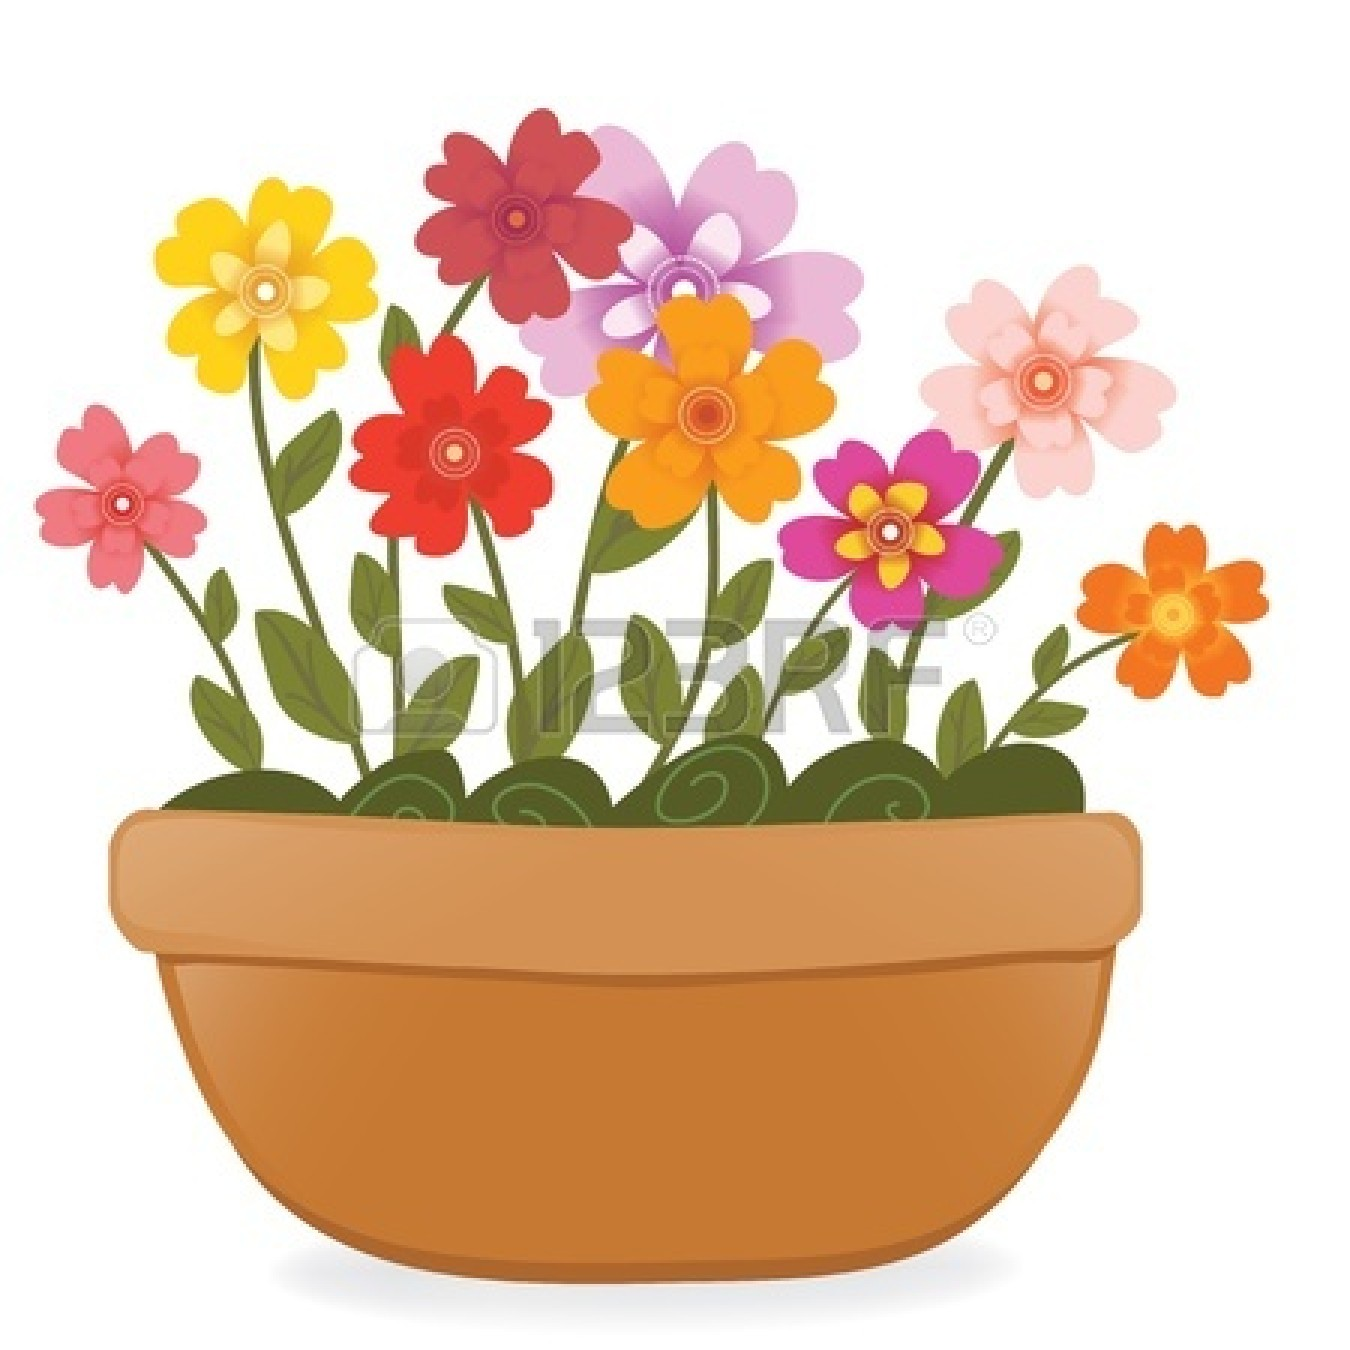 Drawn pot plant clipart Outstanding Flower Full Also Clipart